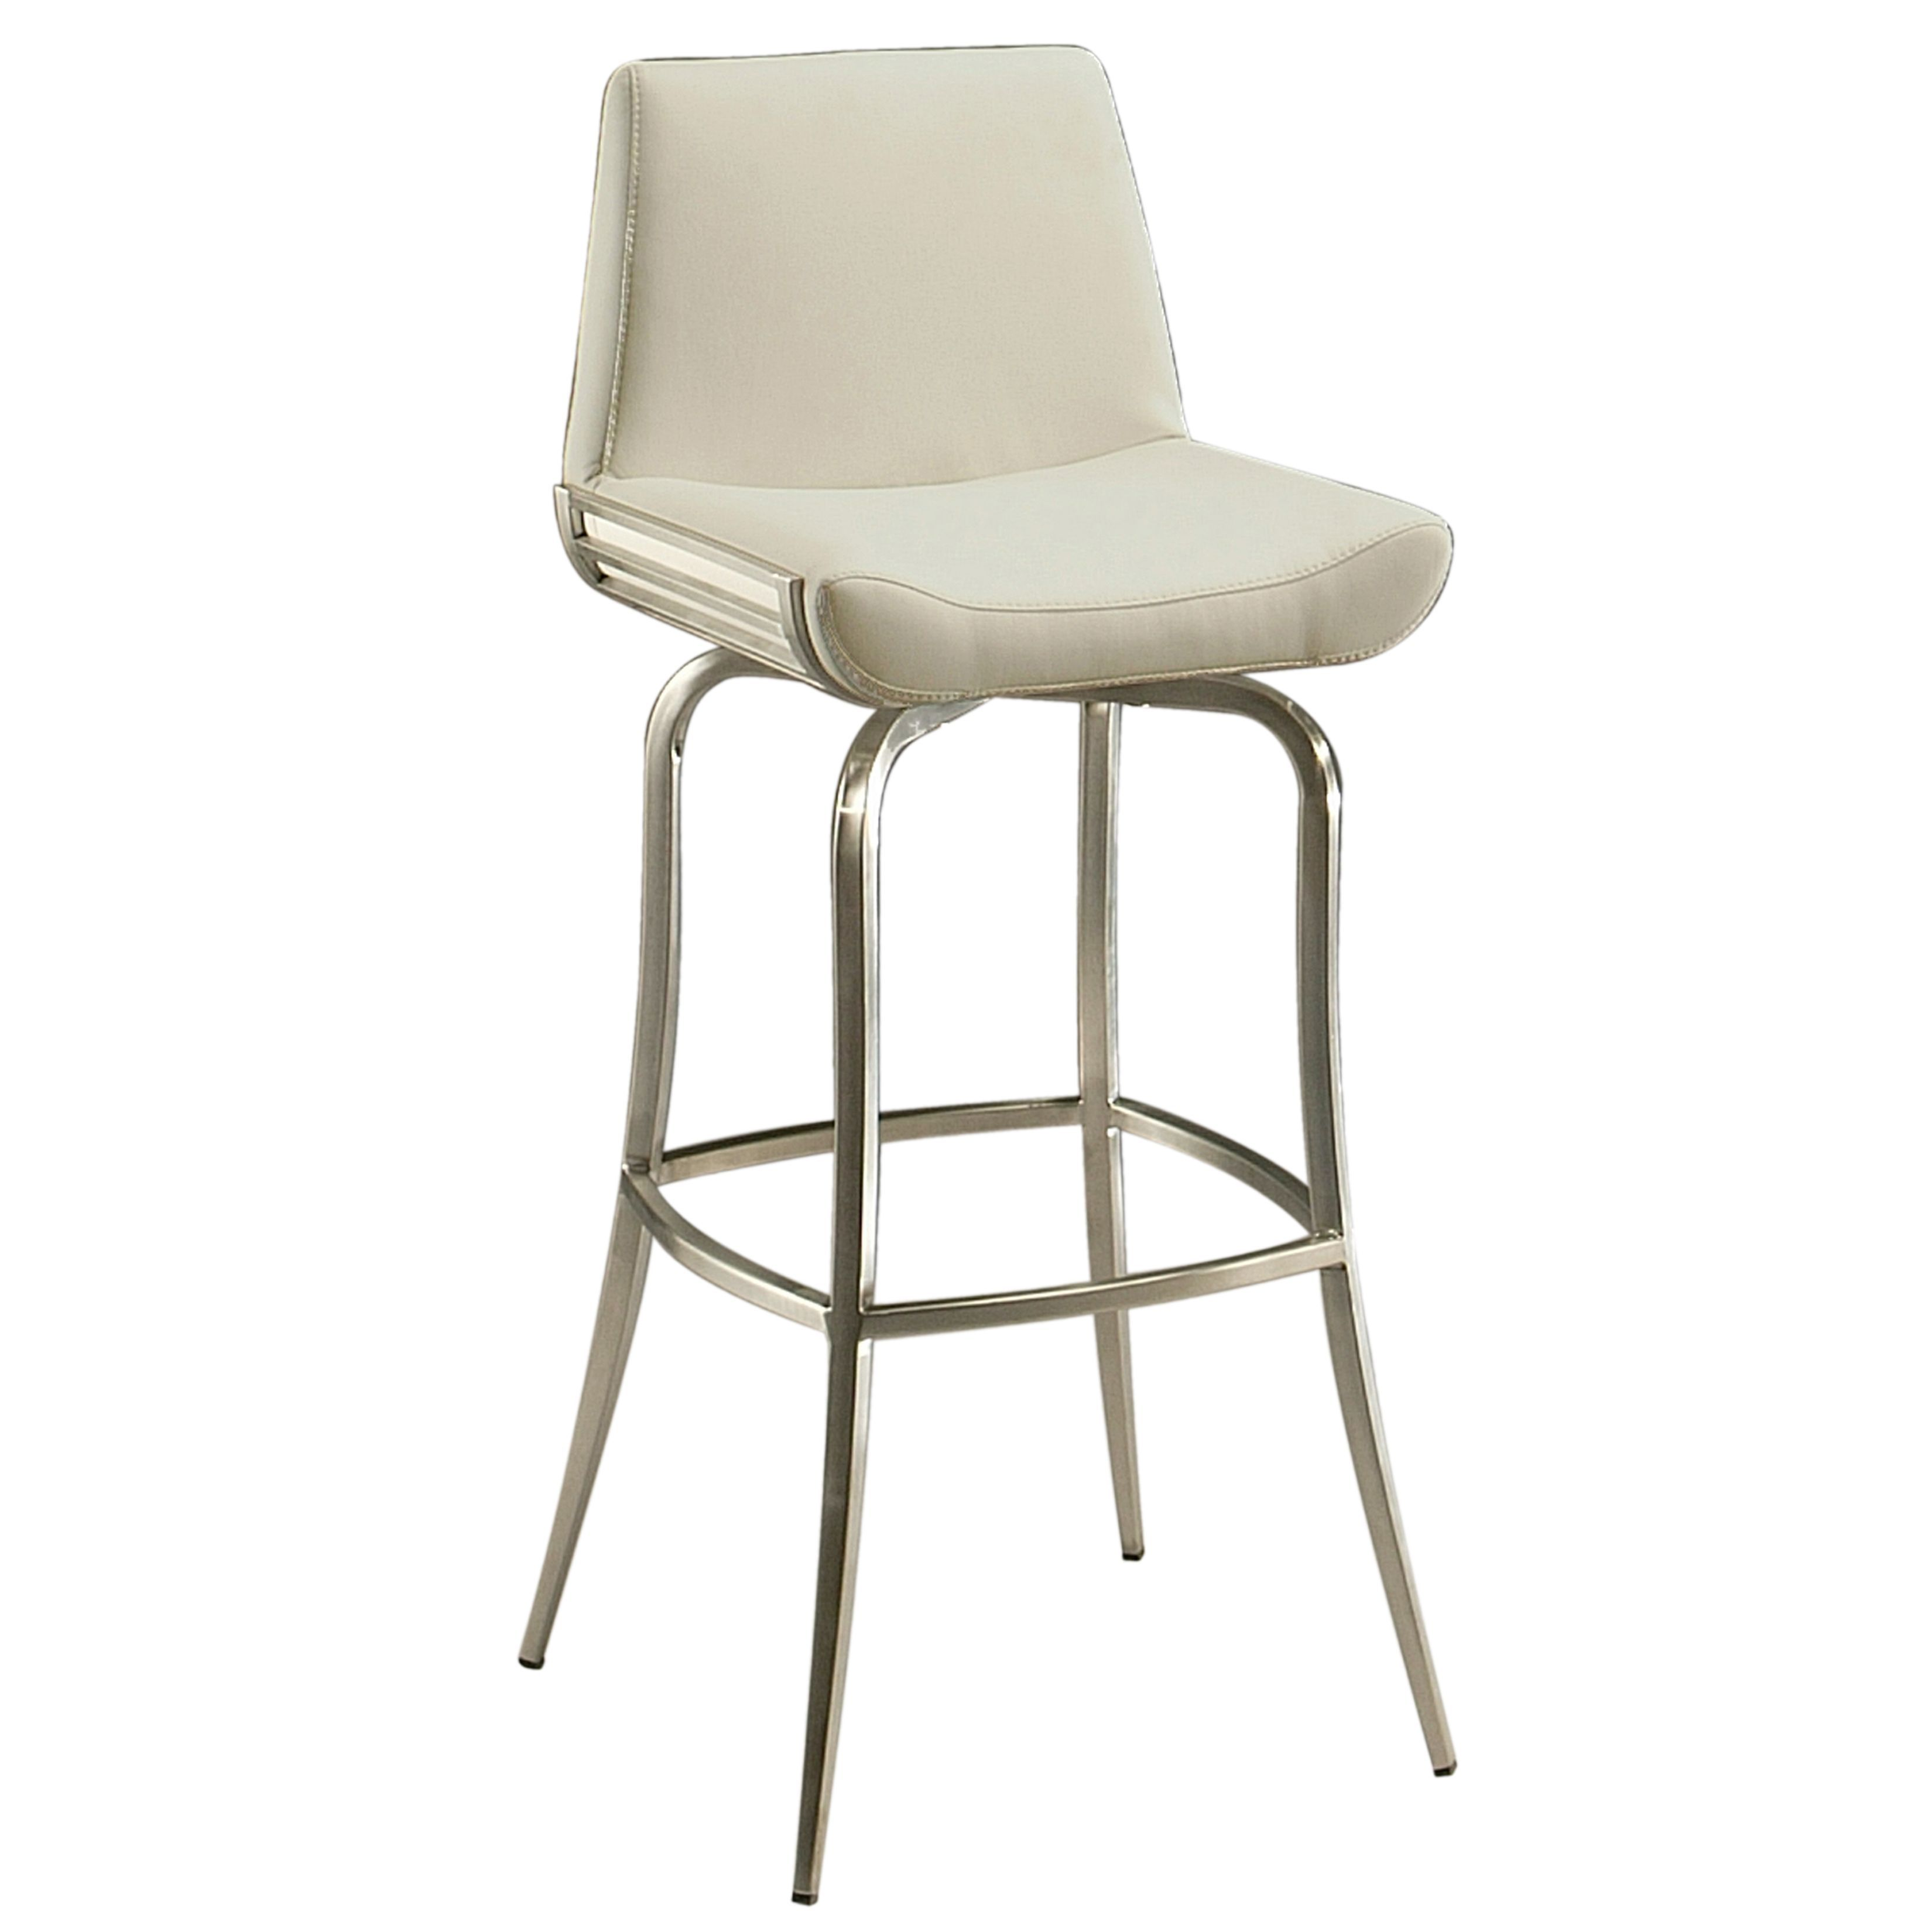 Remarkable Degorah Silver Off White Beige Stainless Steel Faux Theyellowbook Wood Chair Design Ideas Theyellowbookinfo